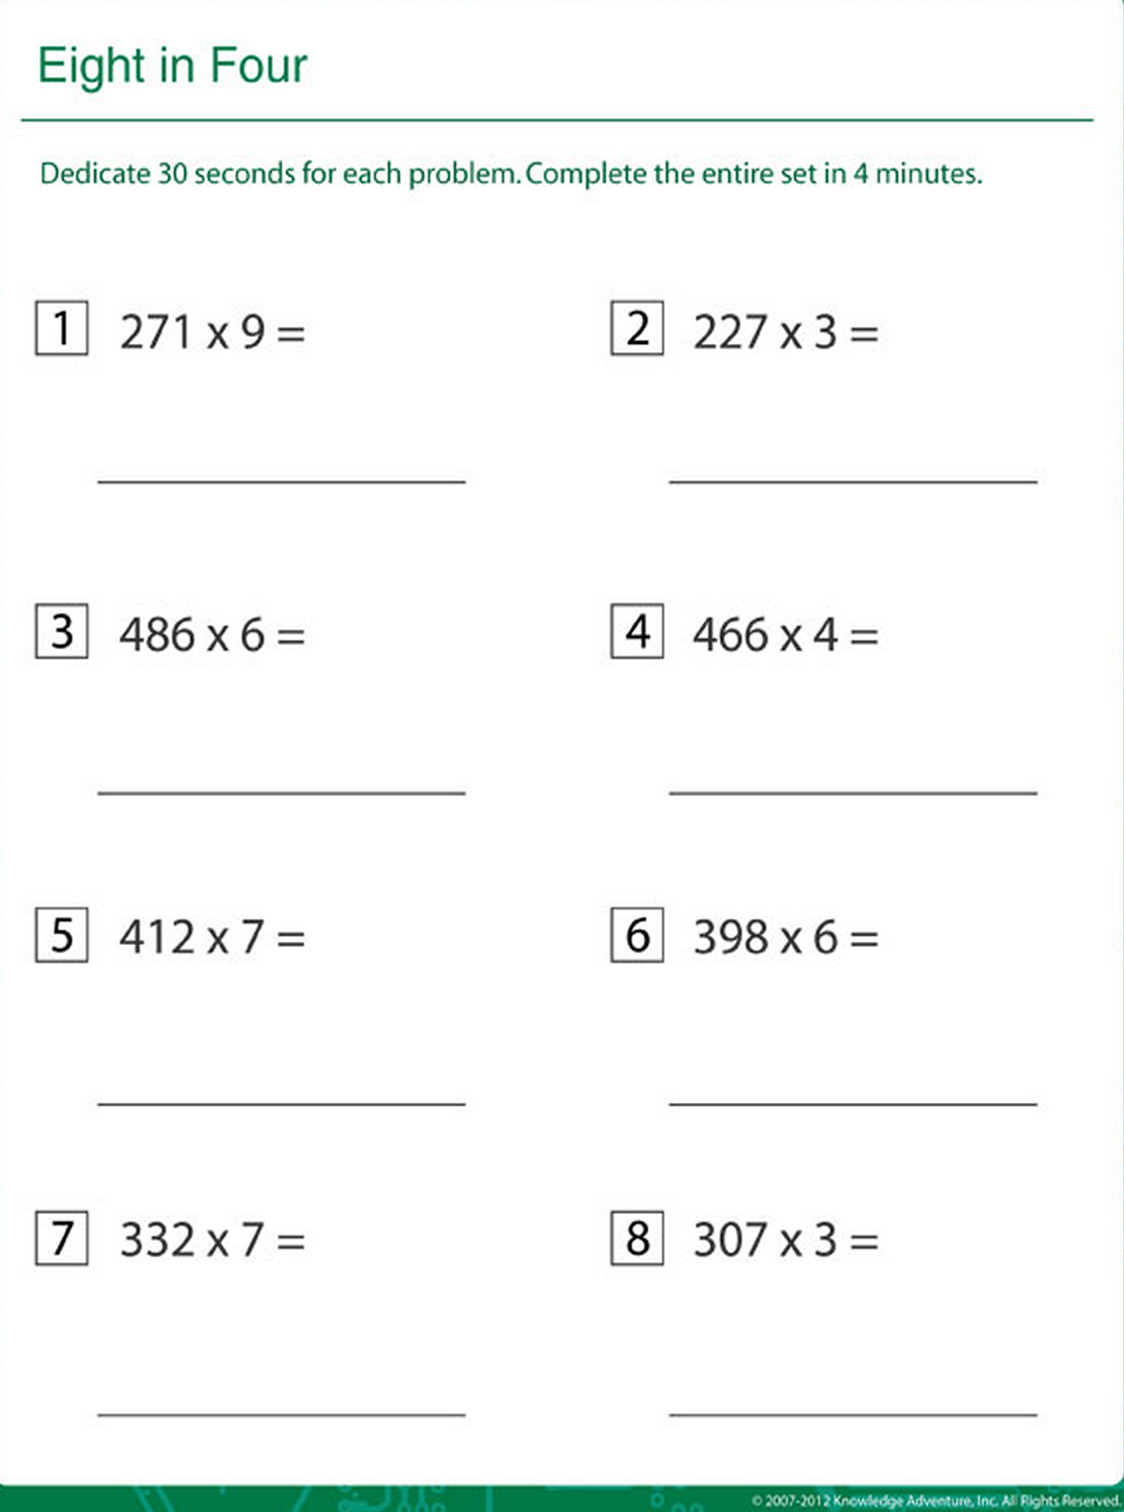 Try our Free Online Math Solver!